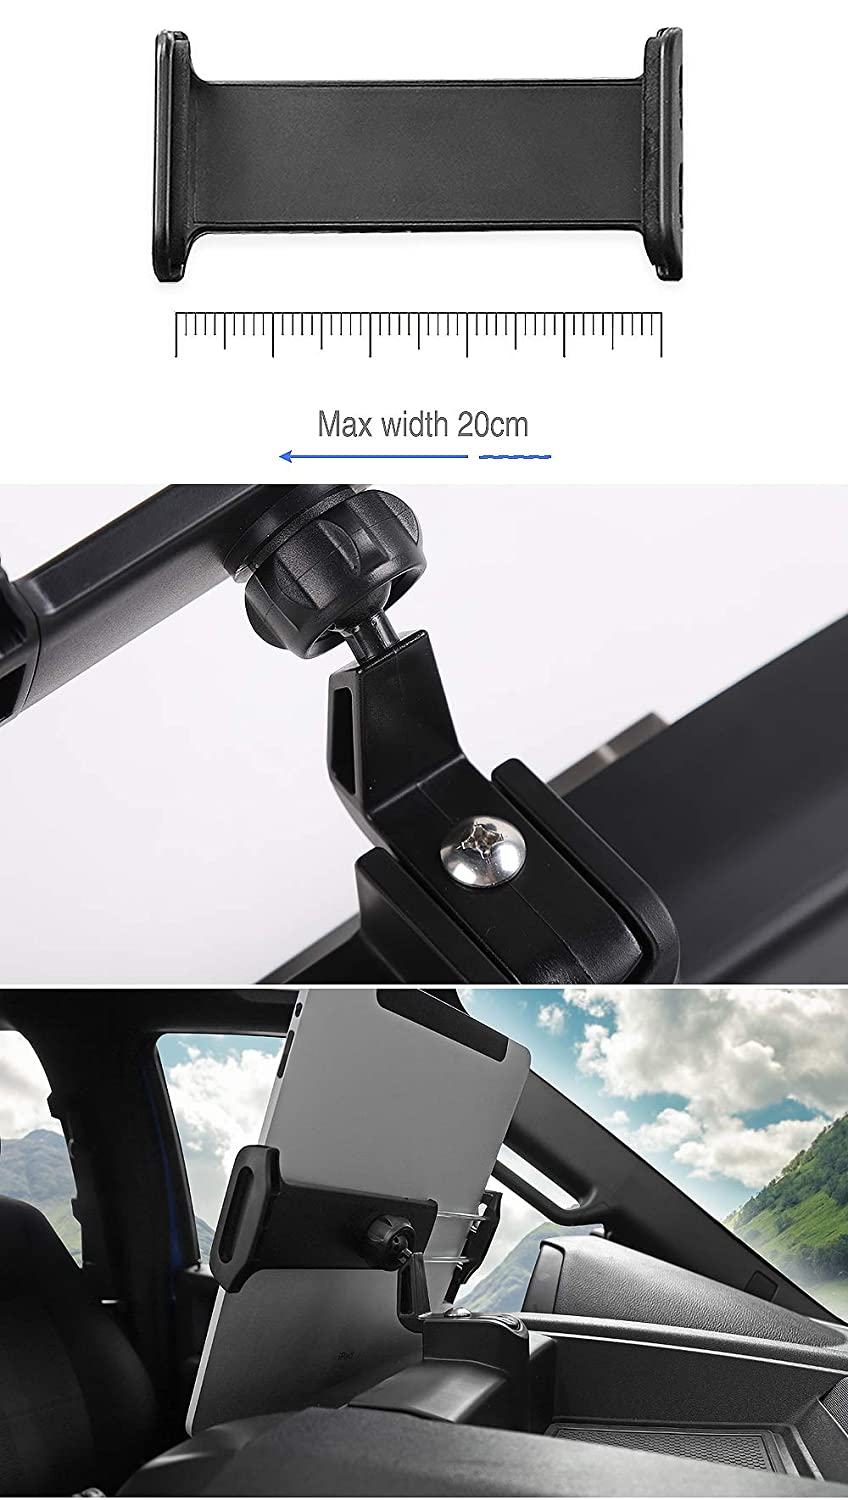 Nicebee Car GPS Mobile Phone Ipad Holder Bracket Cellphone Stand Stickers for Ford F150 2015-2018 Ipad Holder